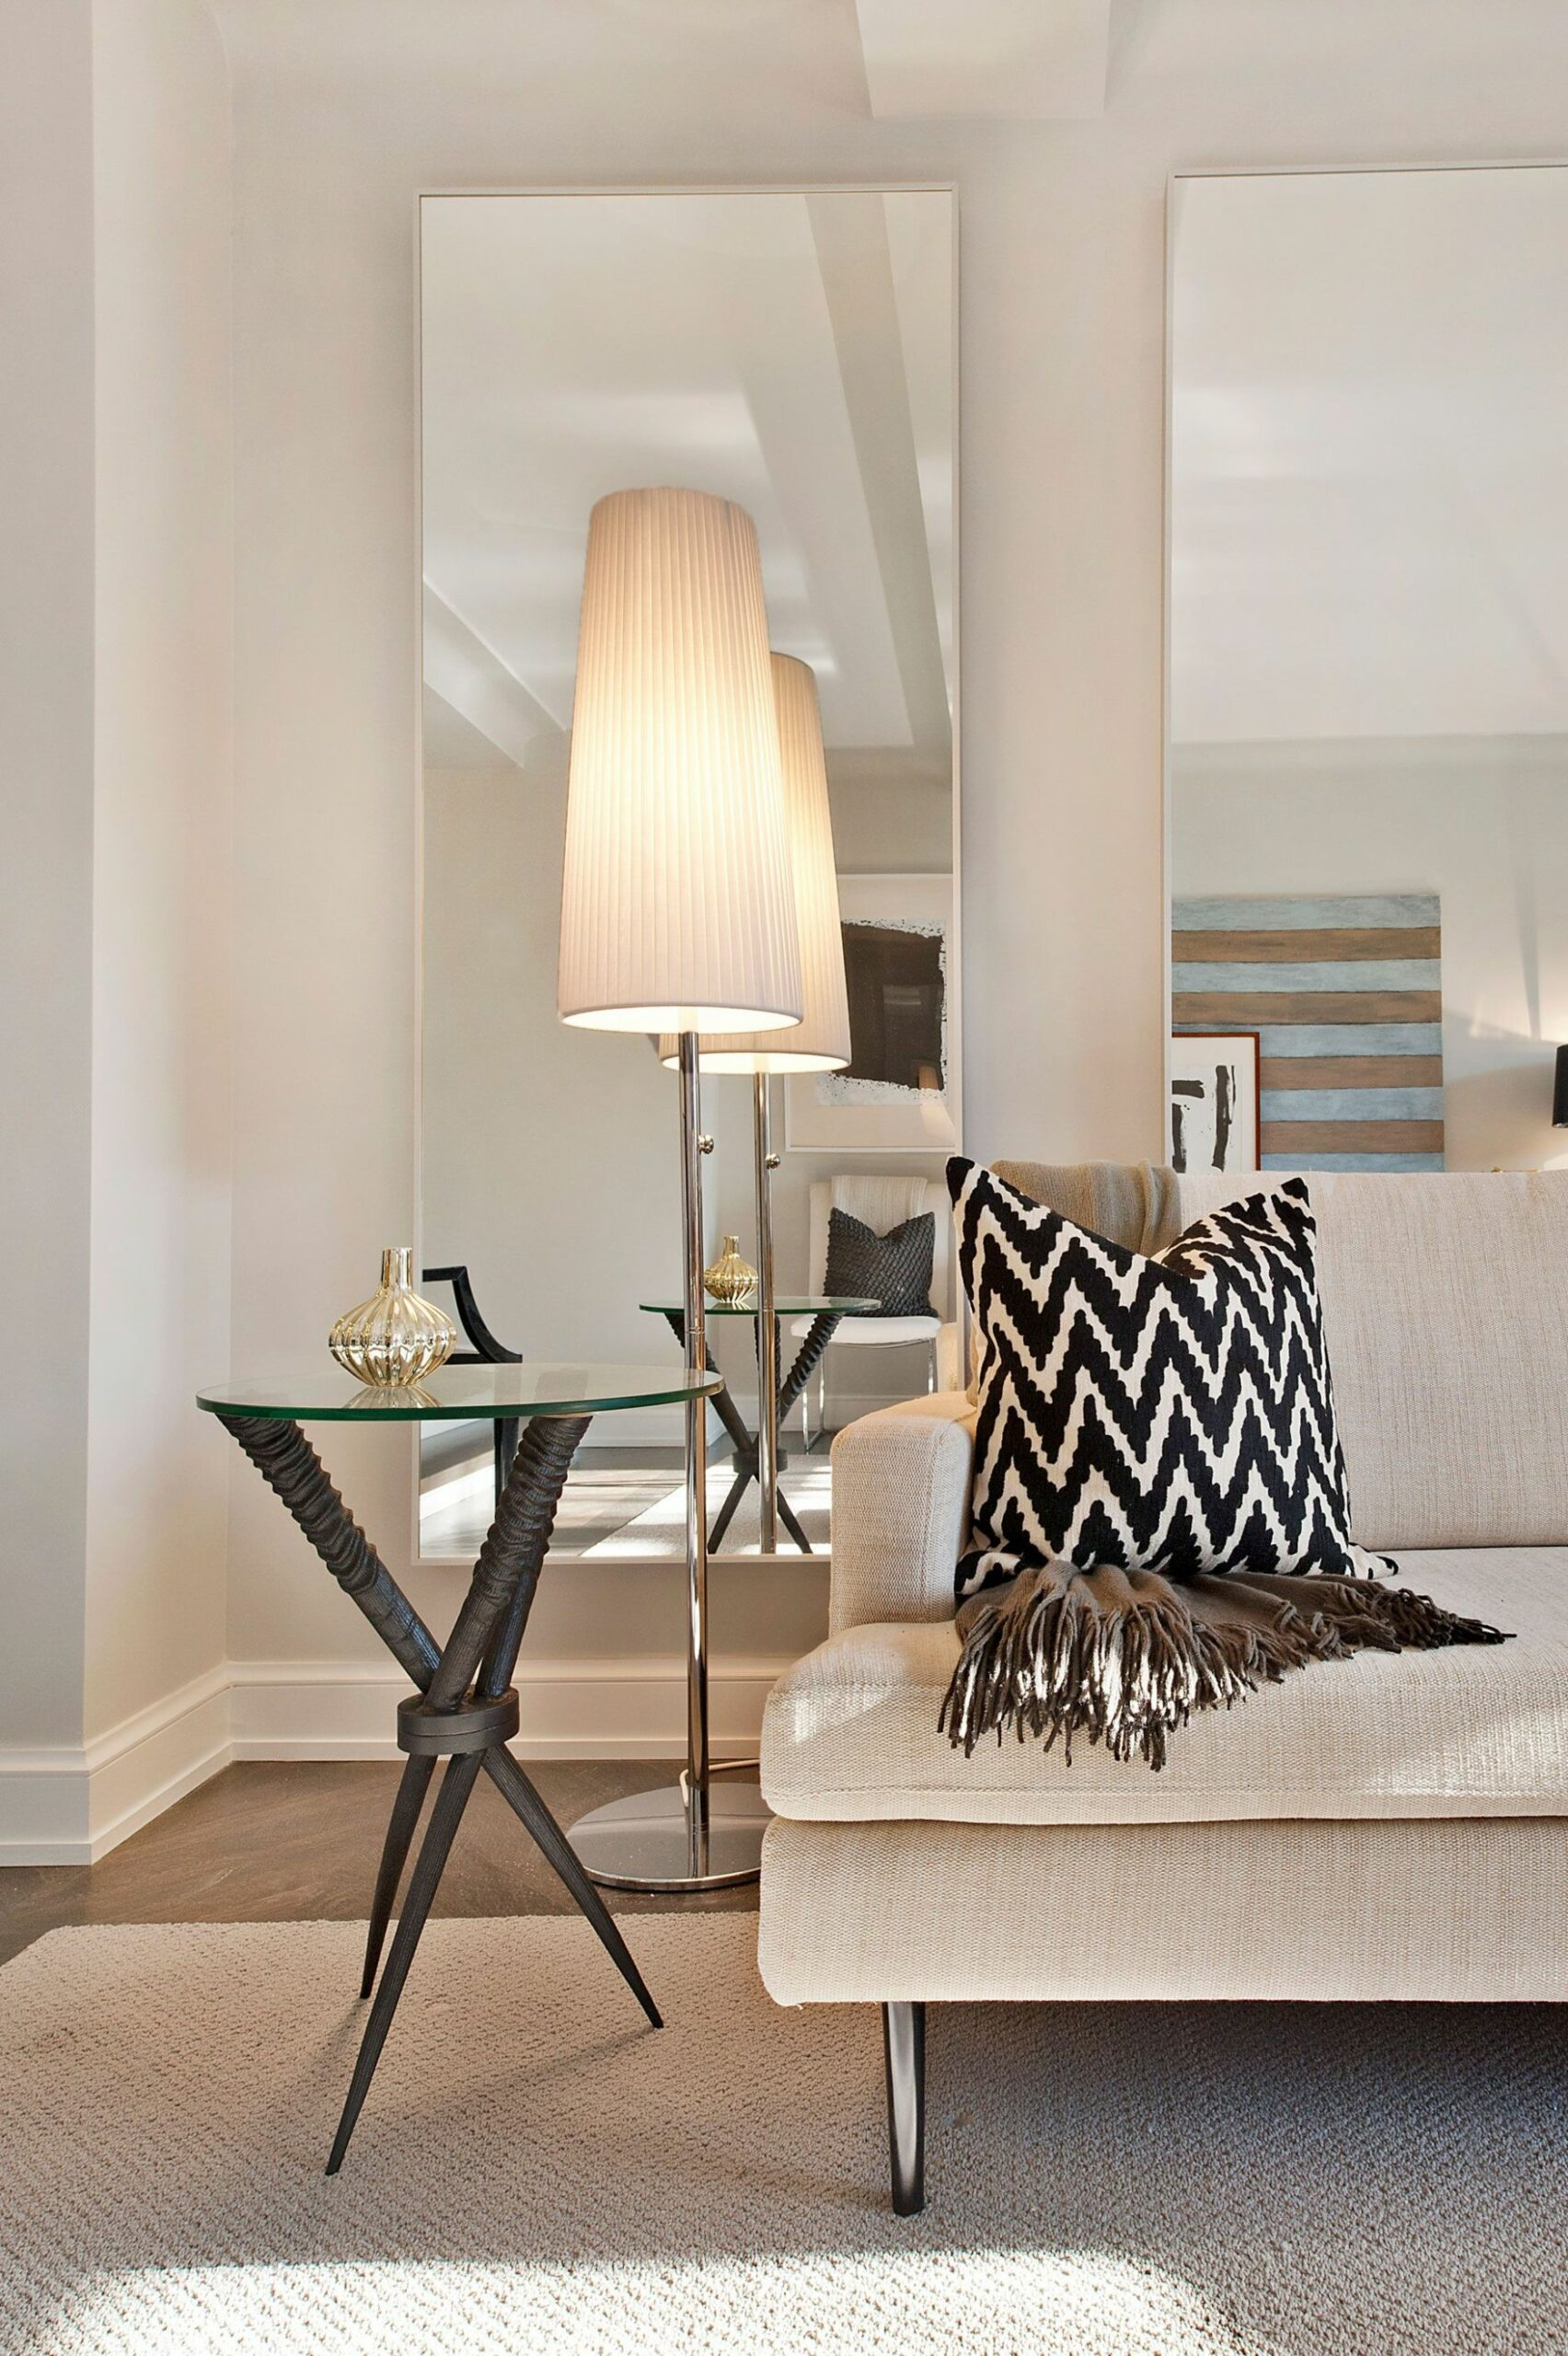 Cheap Ways to Make Your Home Look Luxurious (With images) | Cheap ...